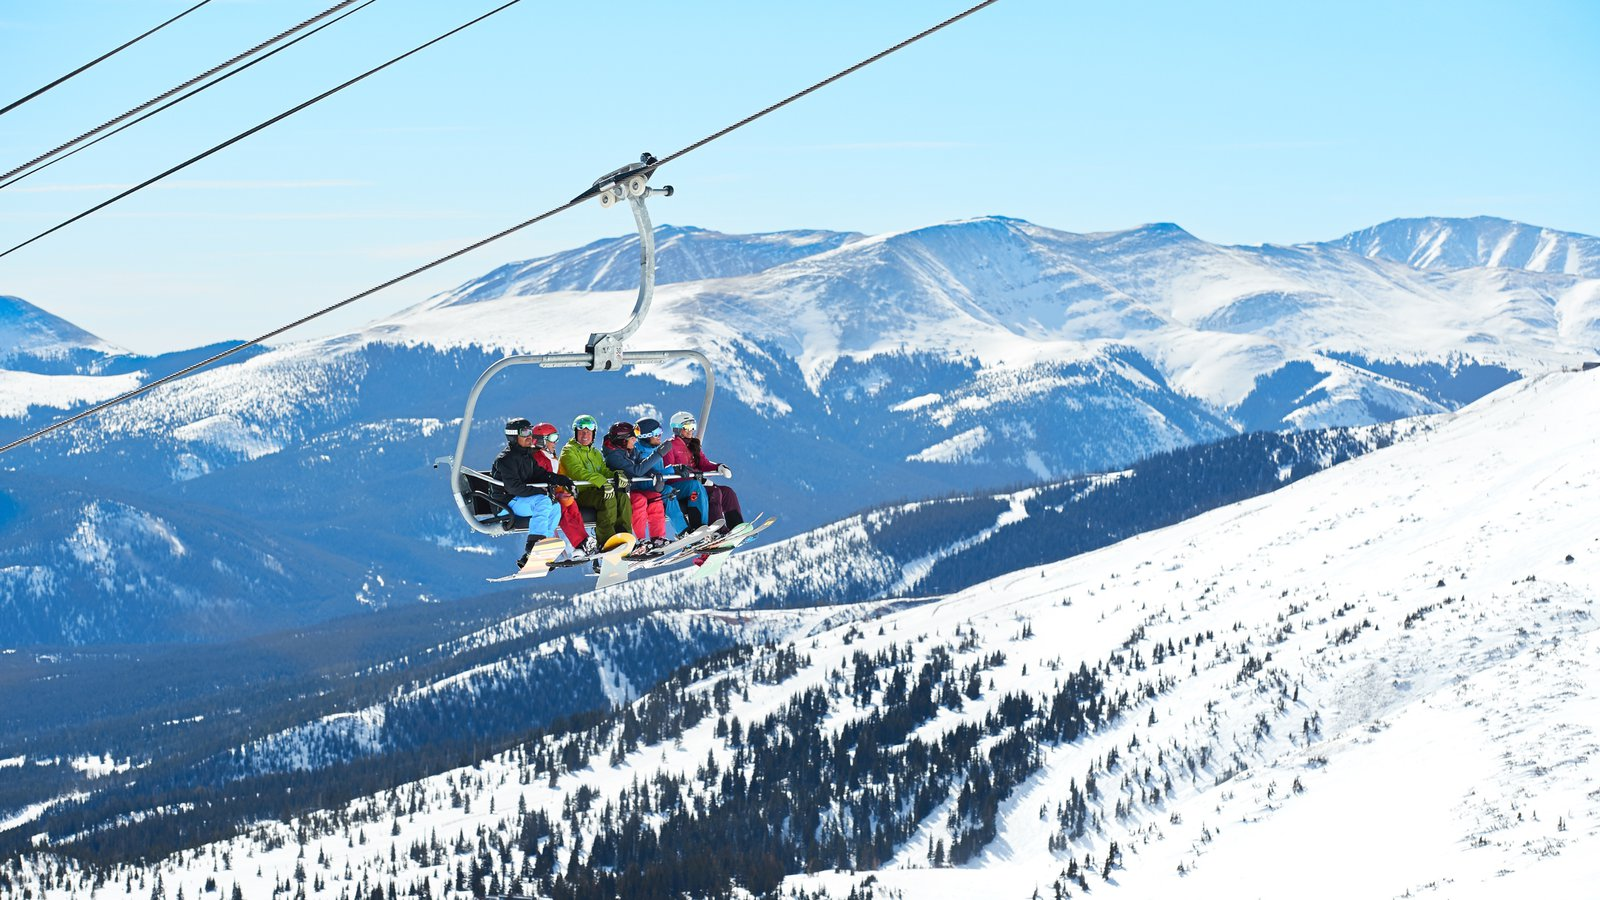 mountain pictures: view images of breckenridge ski resort